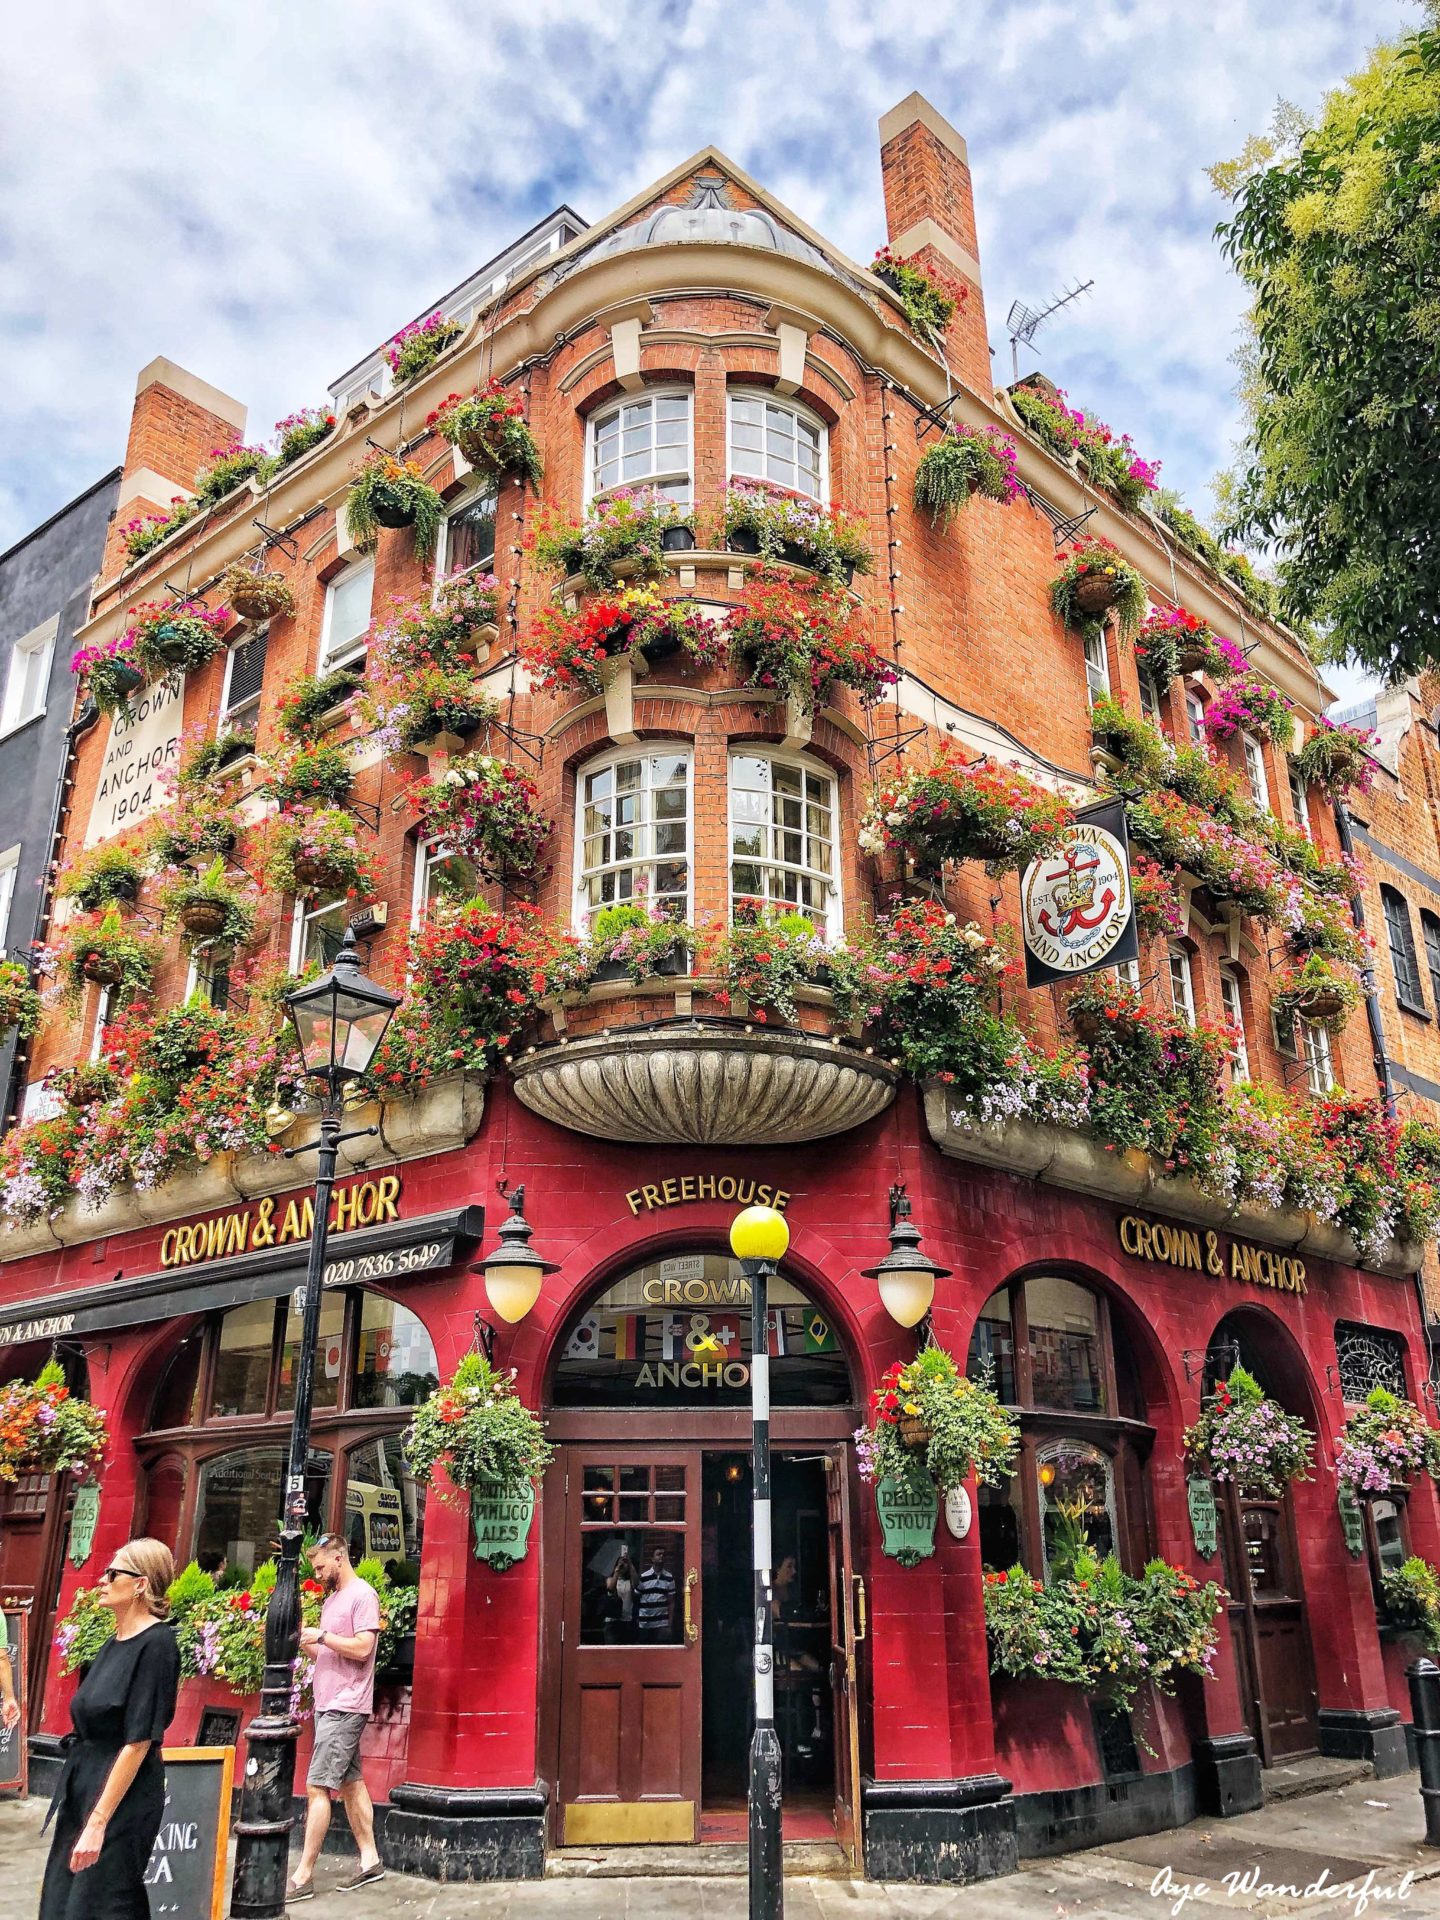 Covent Garden Area Guide - Food, Shopping and Culture - Aye Wanderful